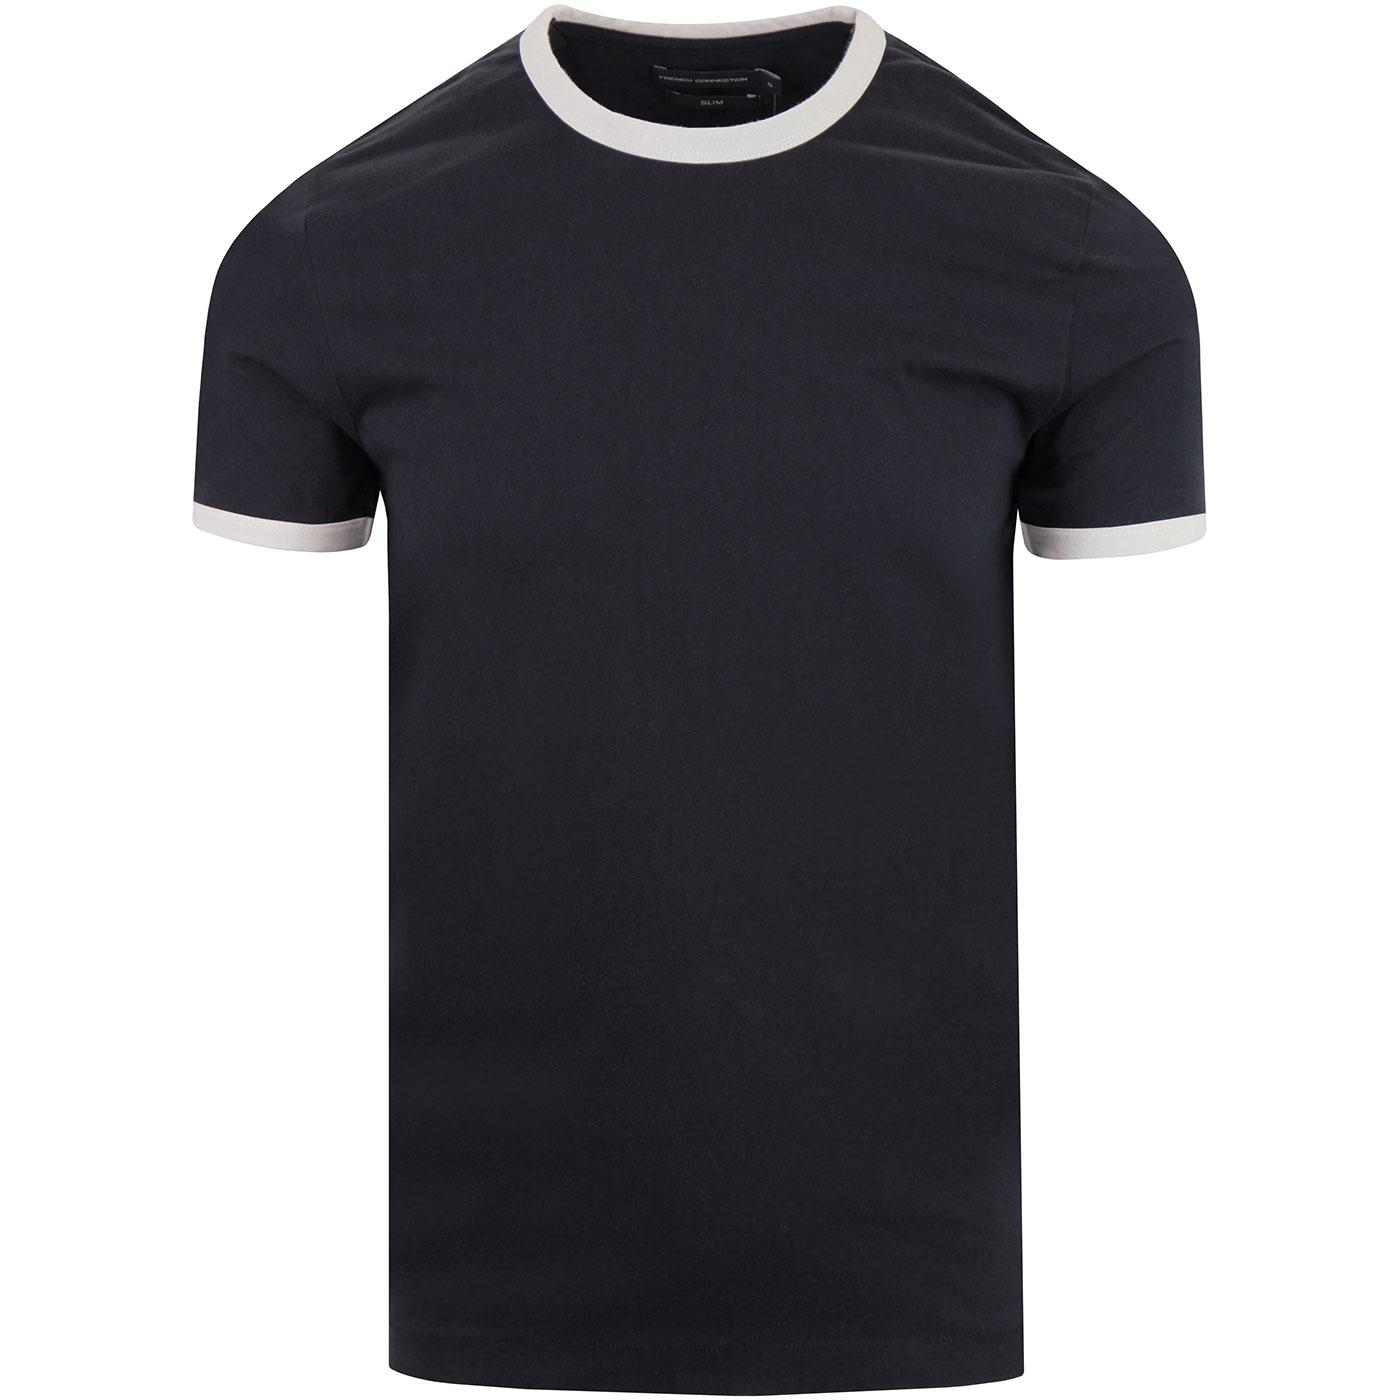 FRENCH CONNECTION Retro Mod Ringer T-shirt NAVY